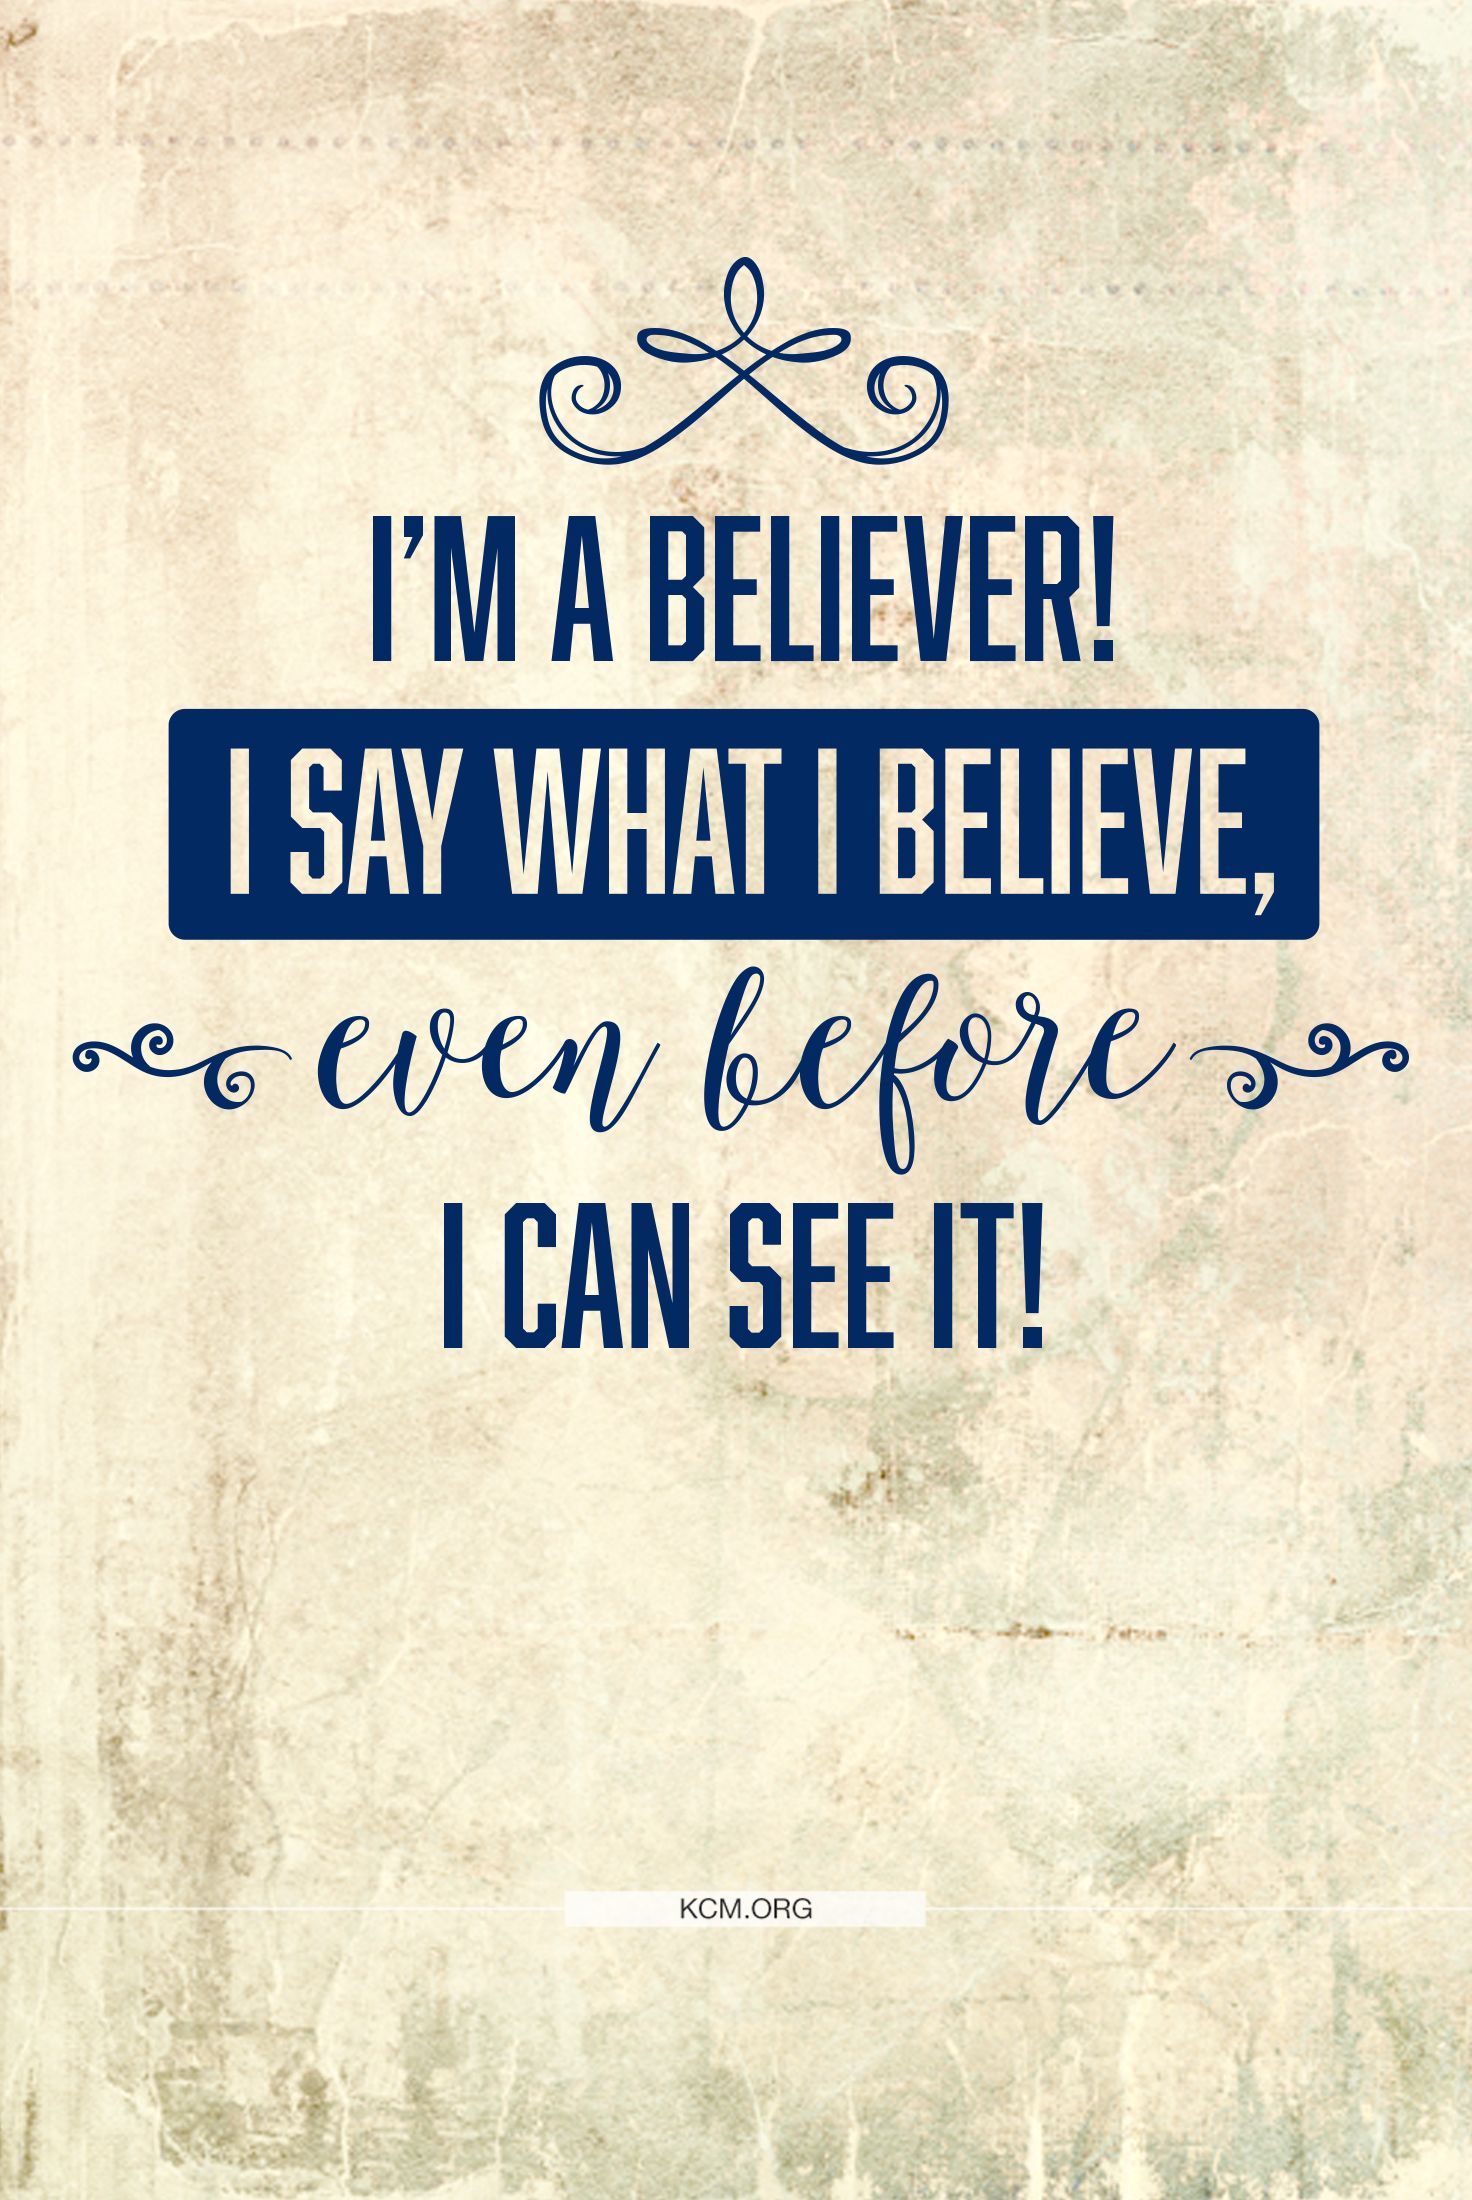 Walk by faith and not by sight! #KCM #inspiration #believer #faith